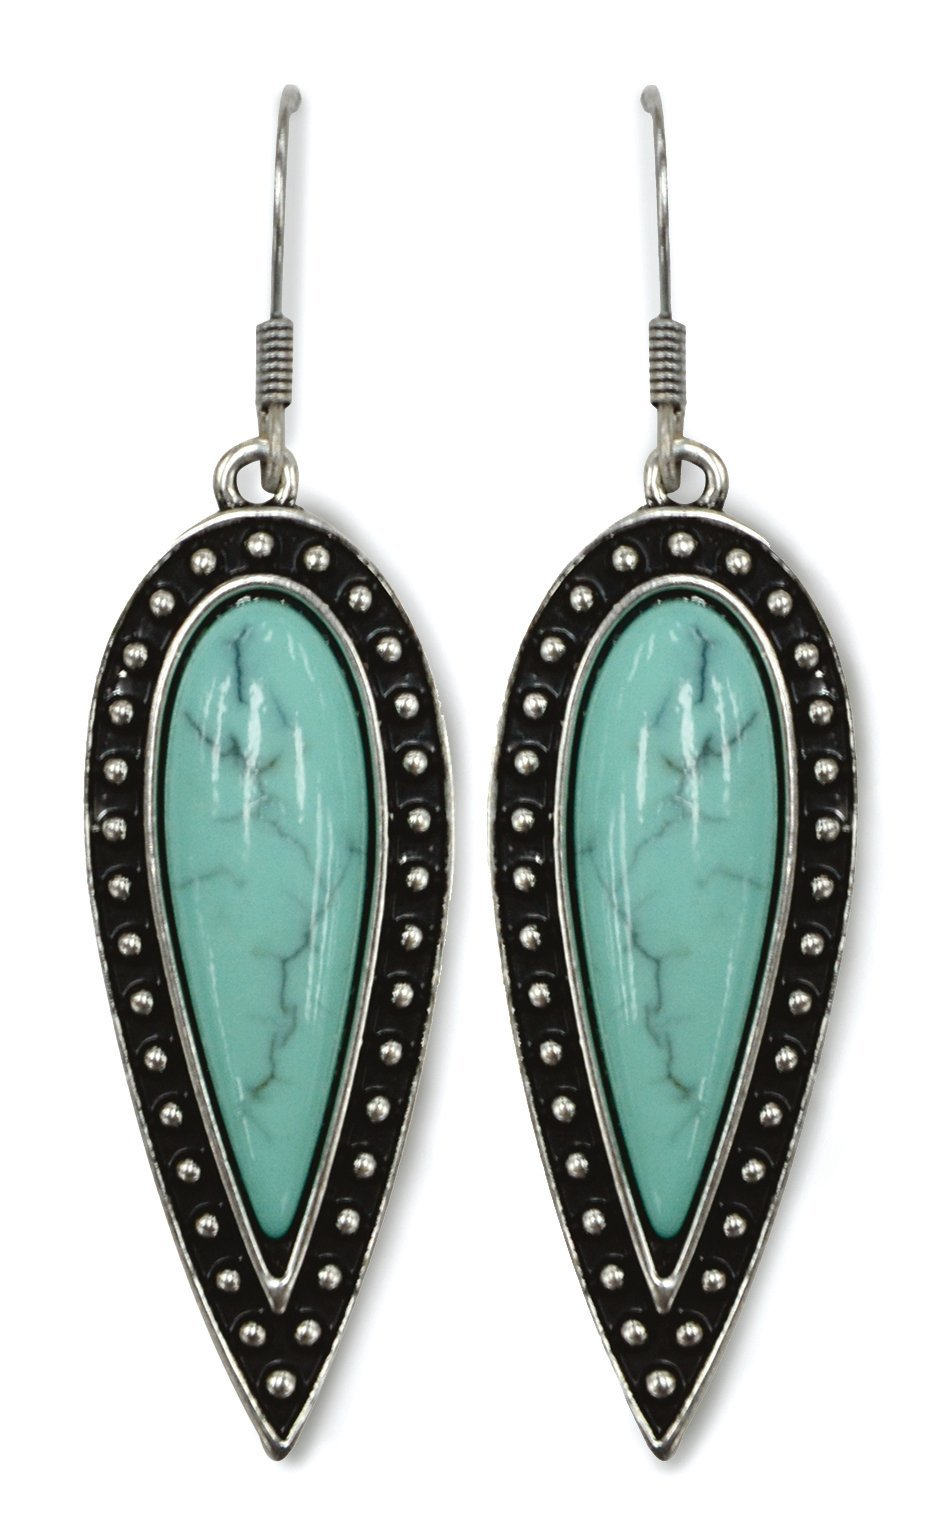 Pure Western Jewellery Sadie Earrings